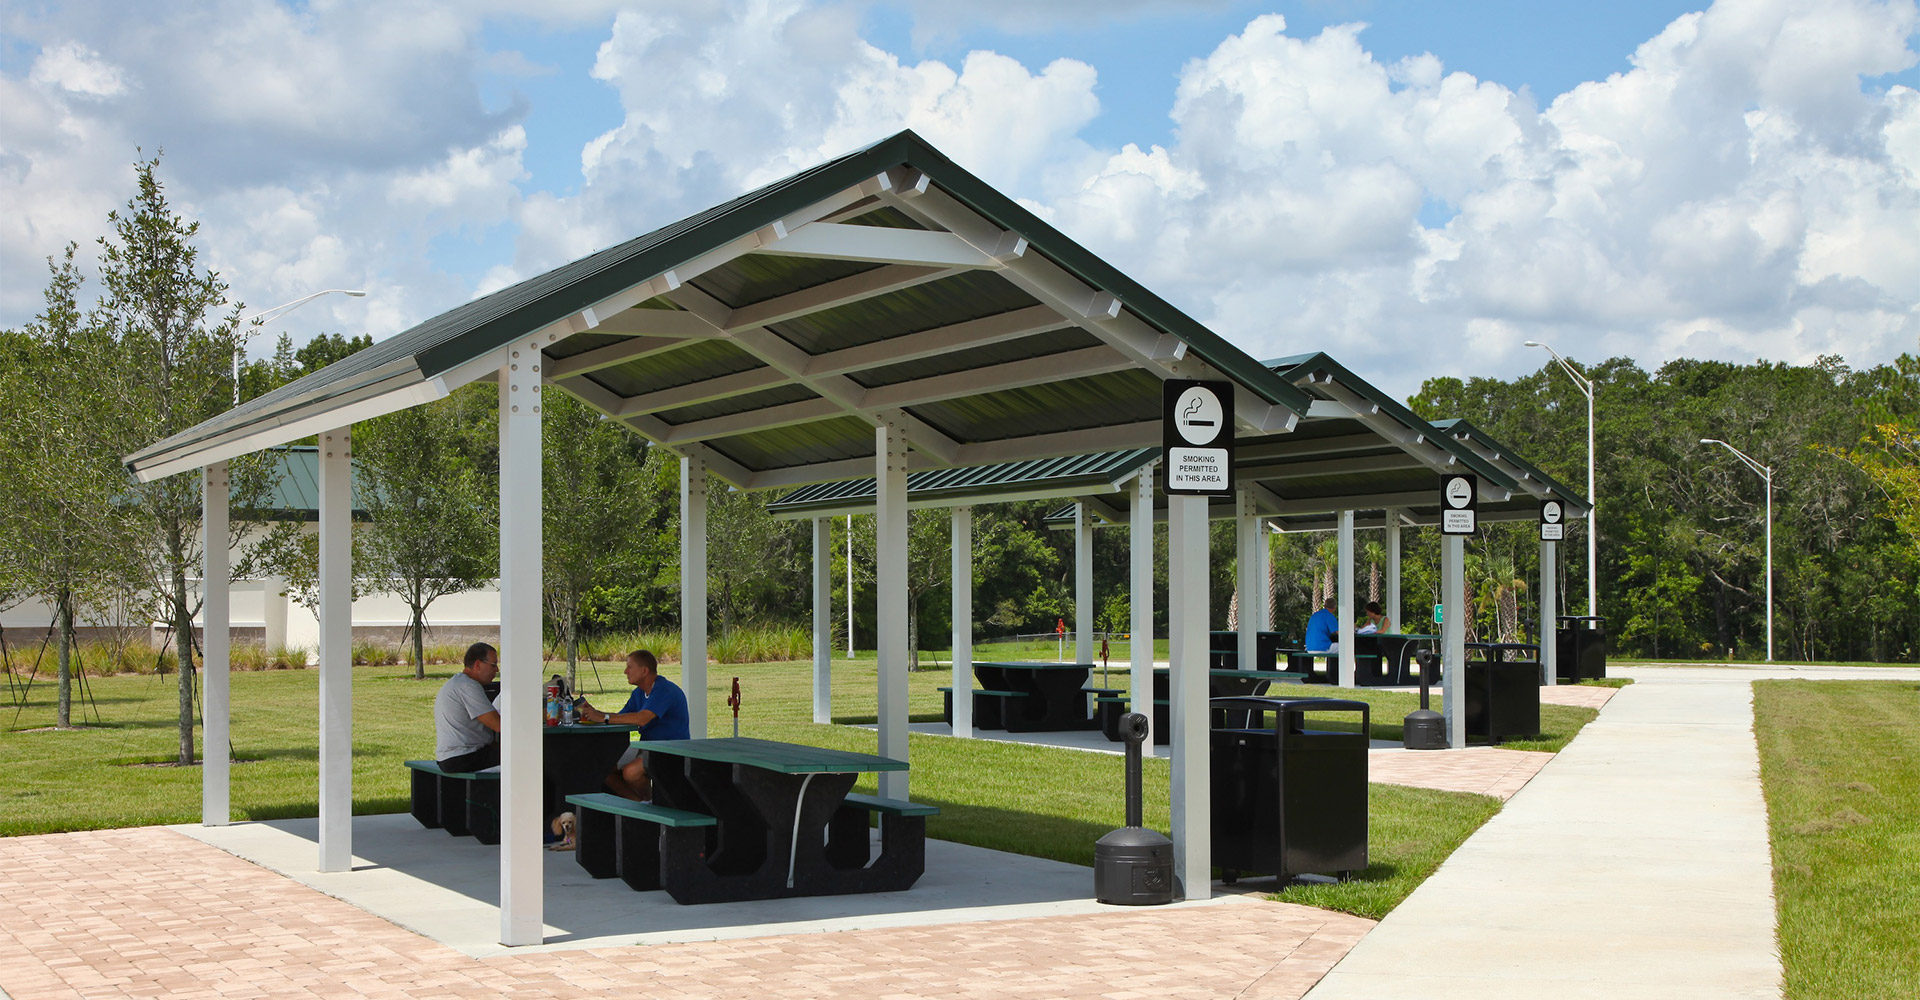 Picnic tables at I-75 rest areas.